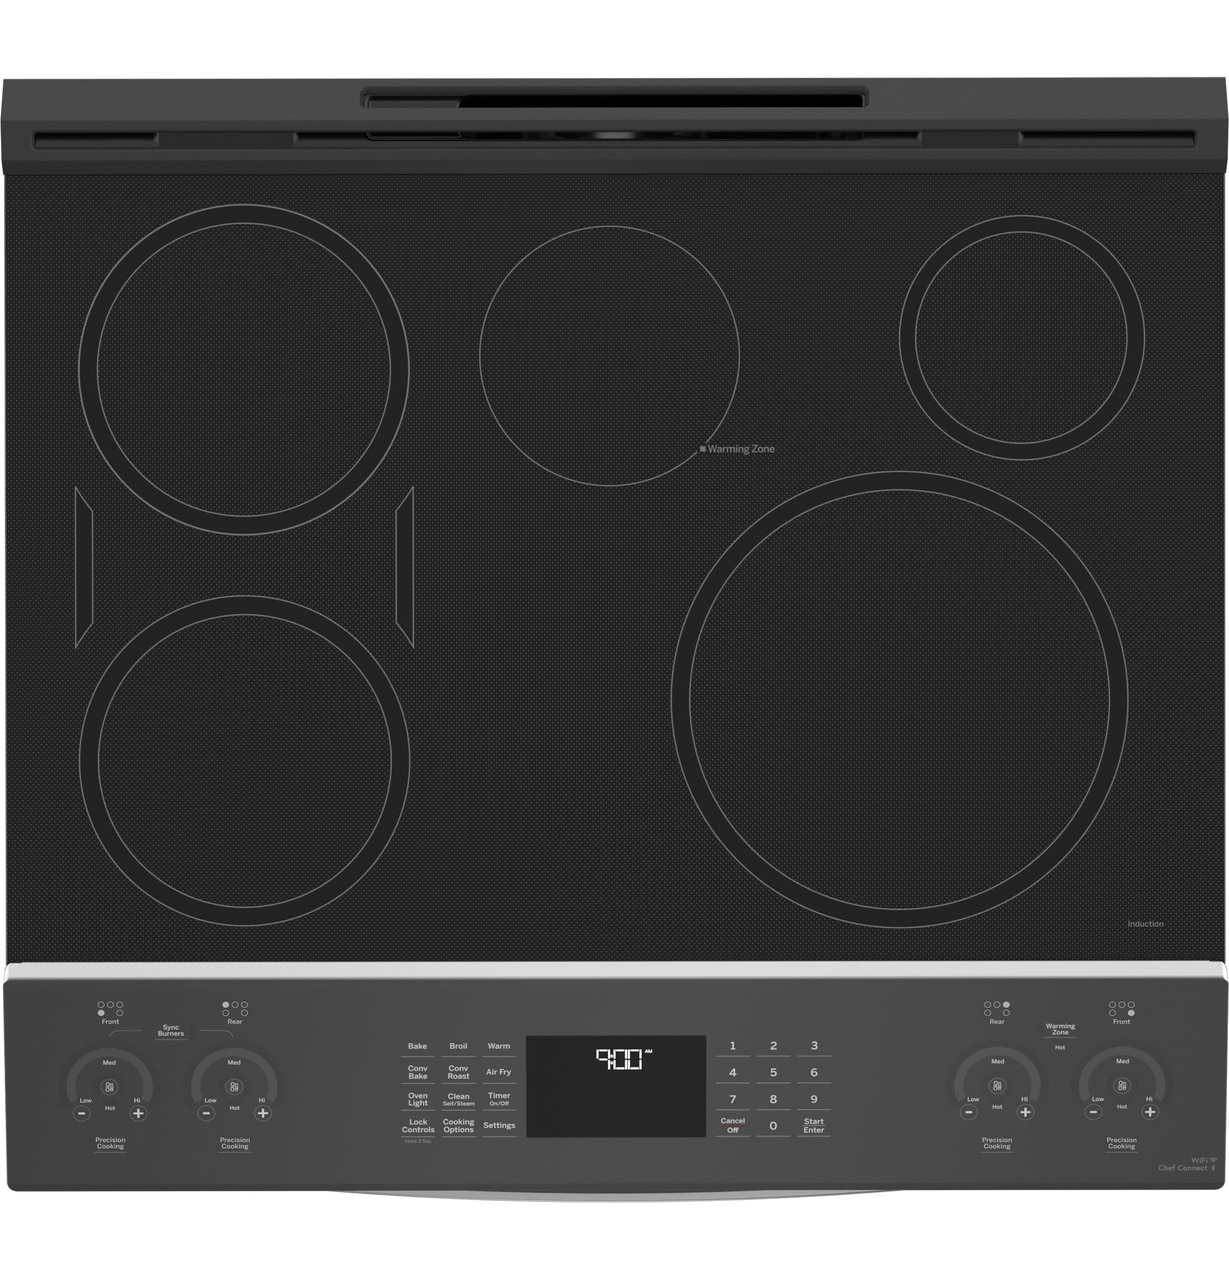 "GE Profile 30"" Electric Range PHS930YPFS Induction Cooktops"